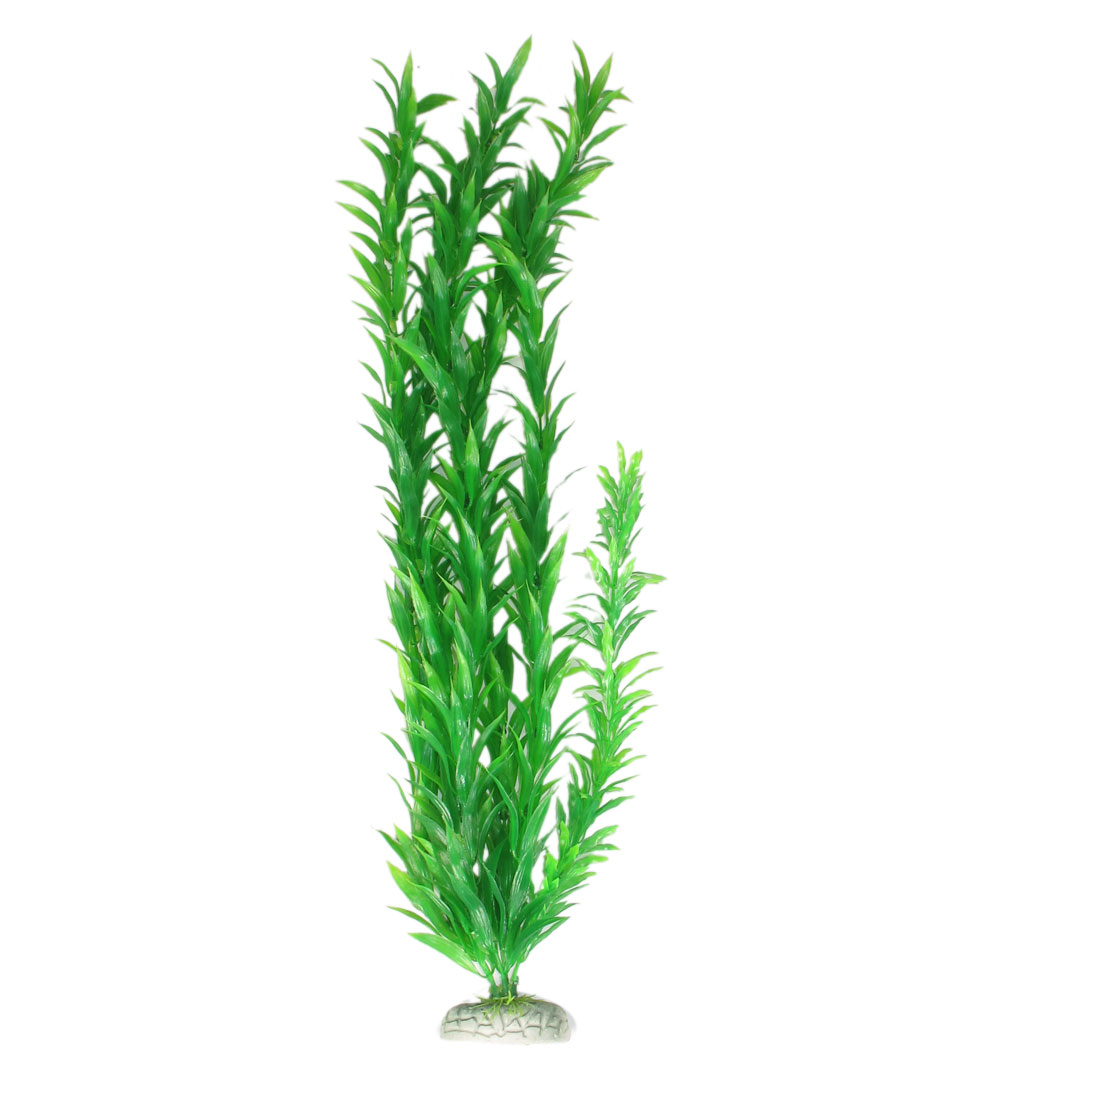 "32"" Height Green Manmade Aquarium Plastic Plant for Fish Tank"